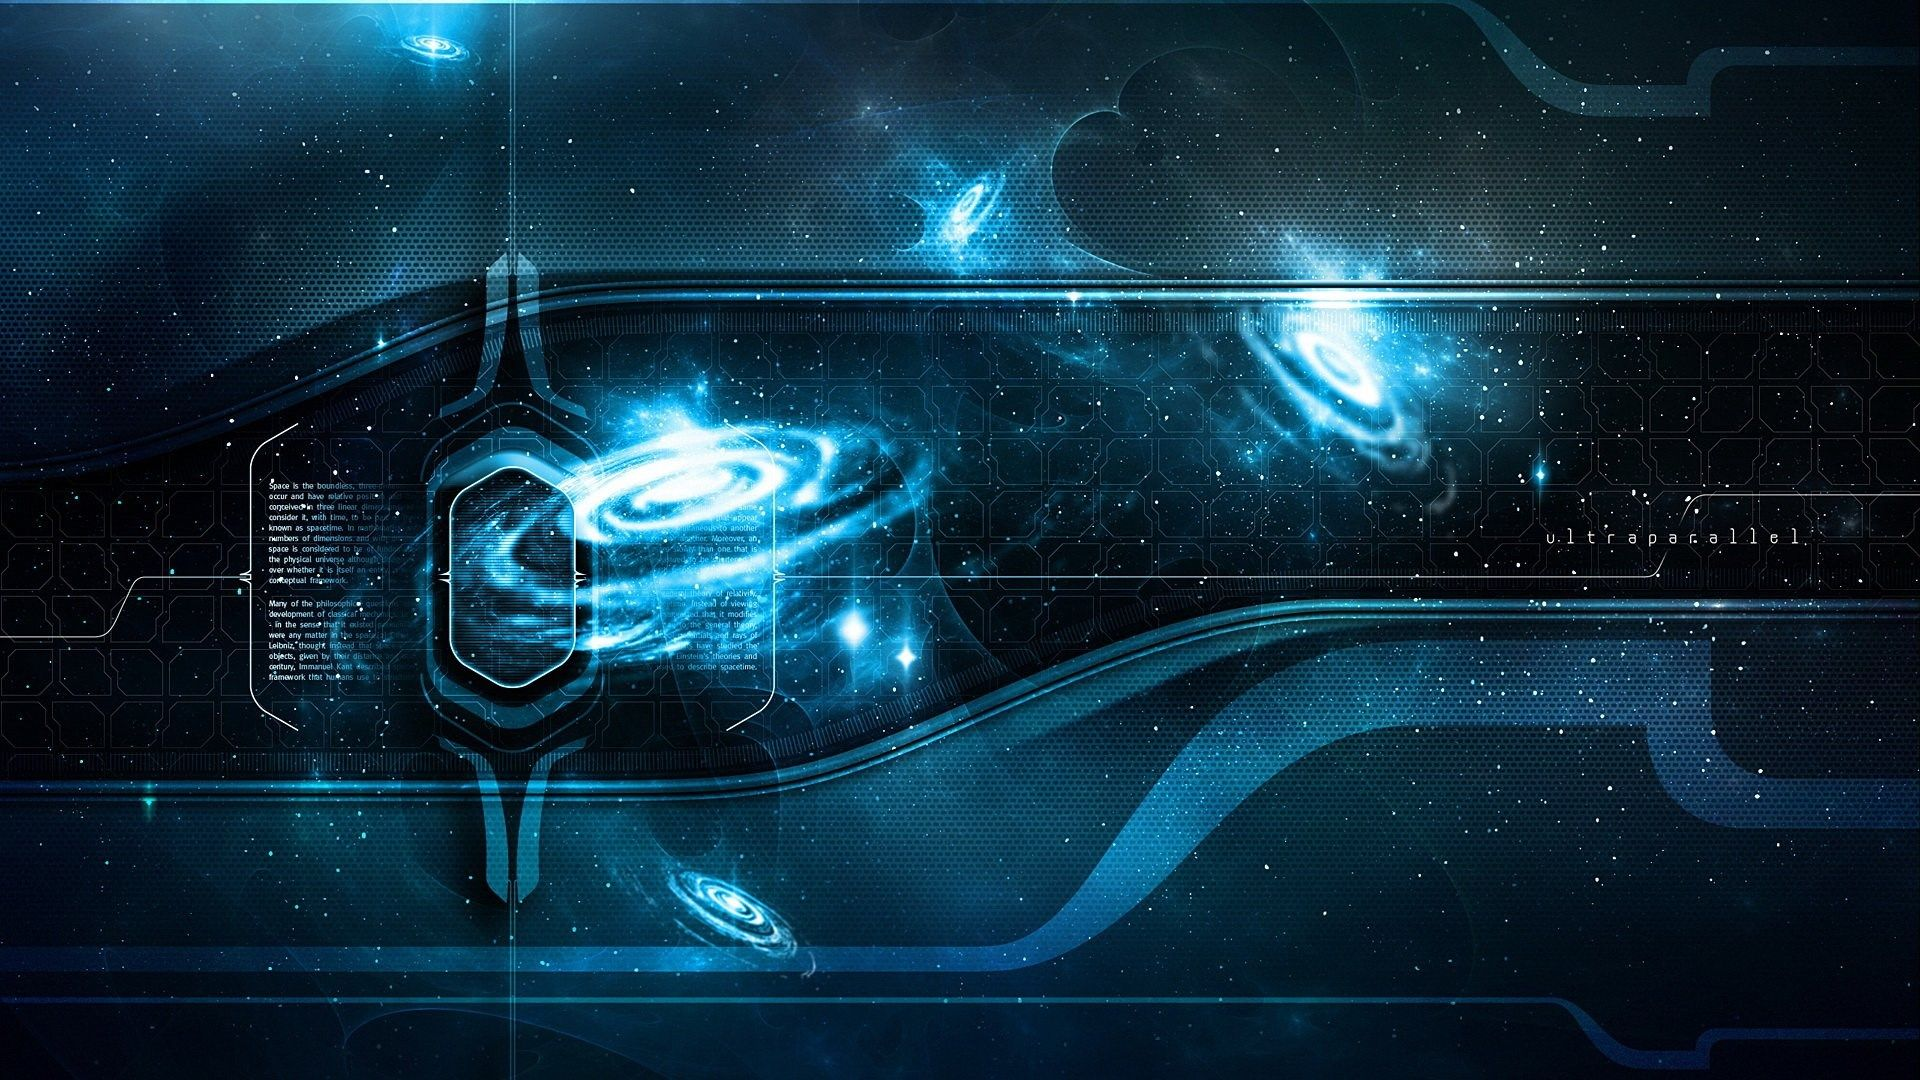 Computer Science Hd Backgrounds Science Background Technology Wallpaper Tech Background